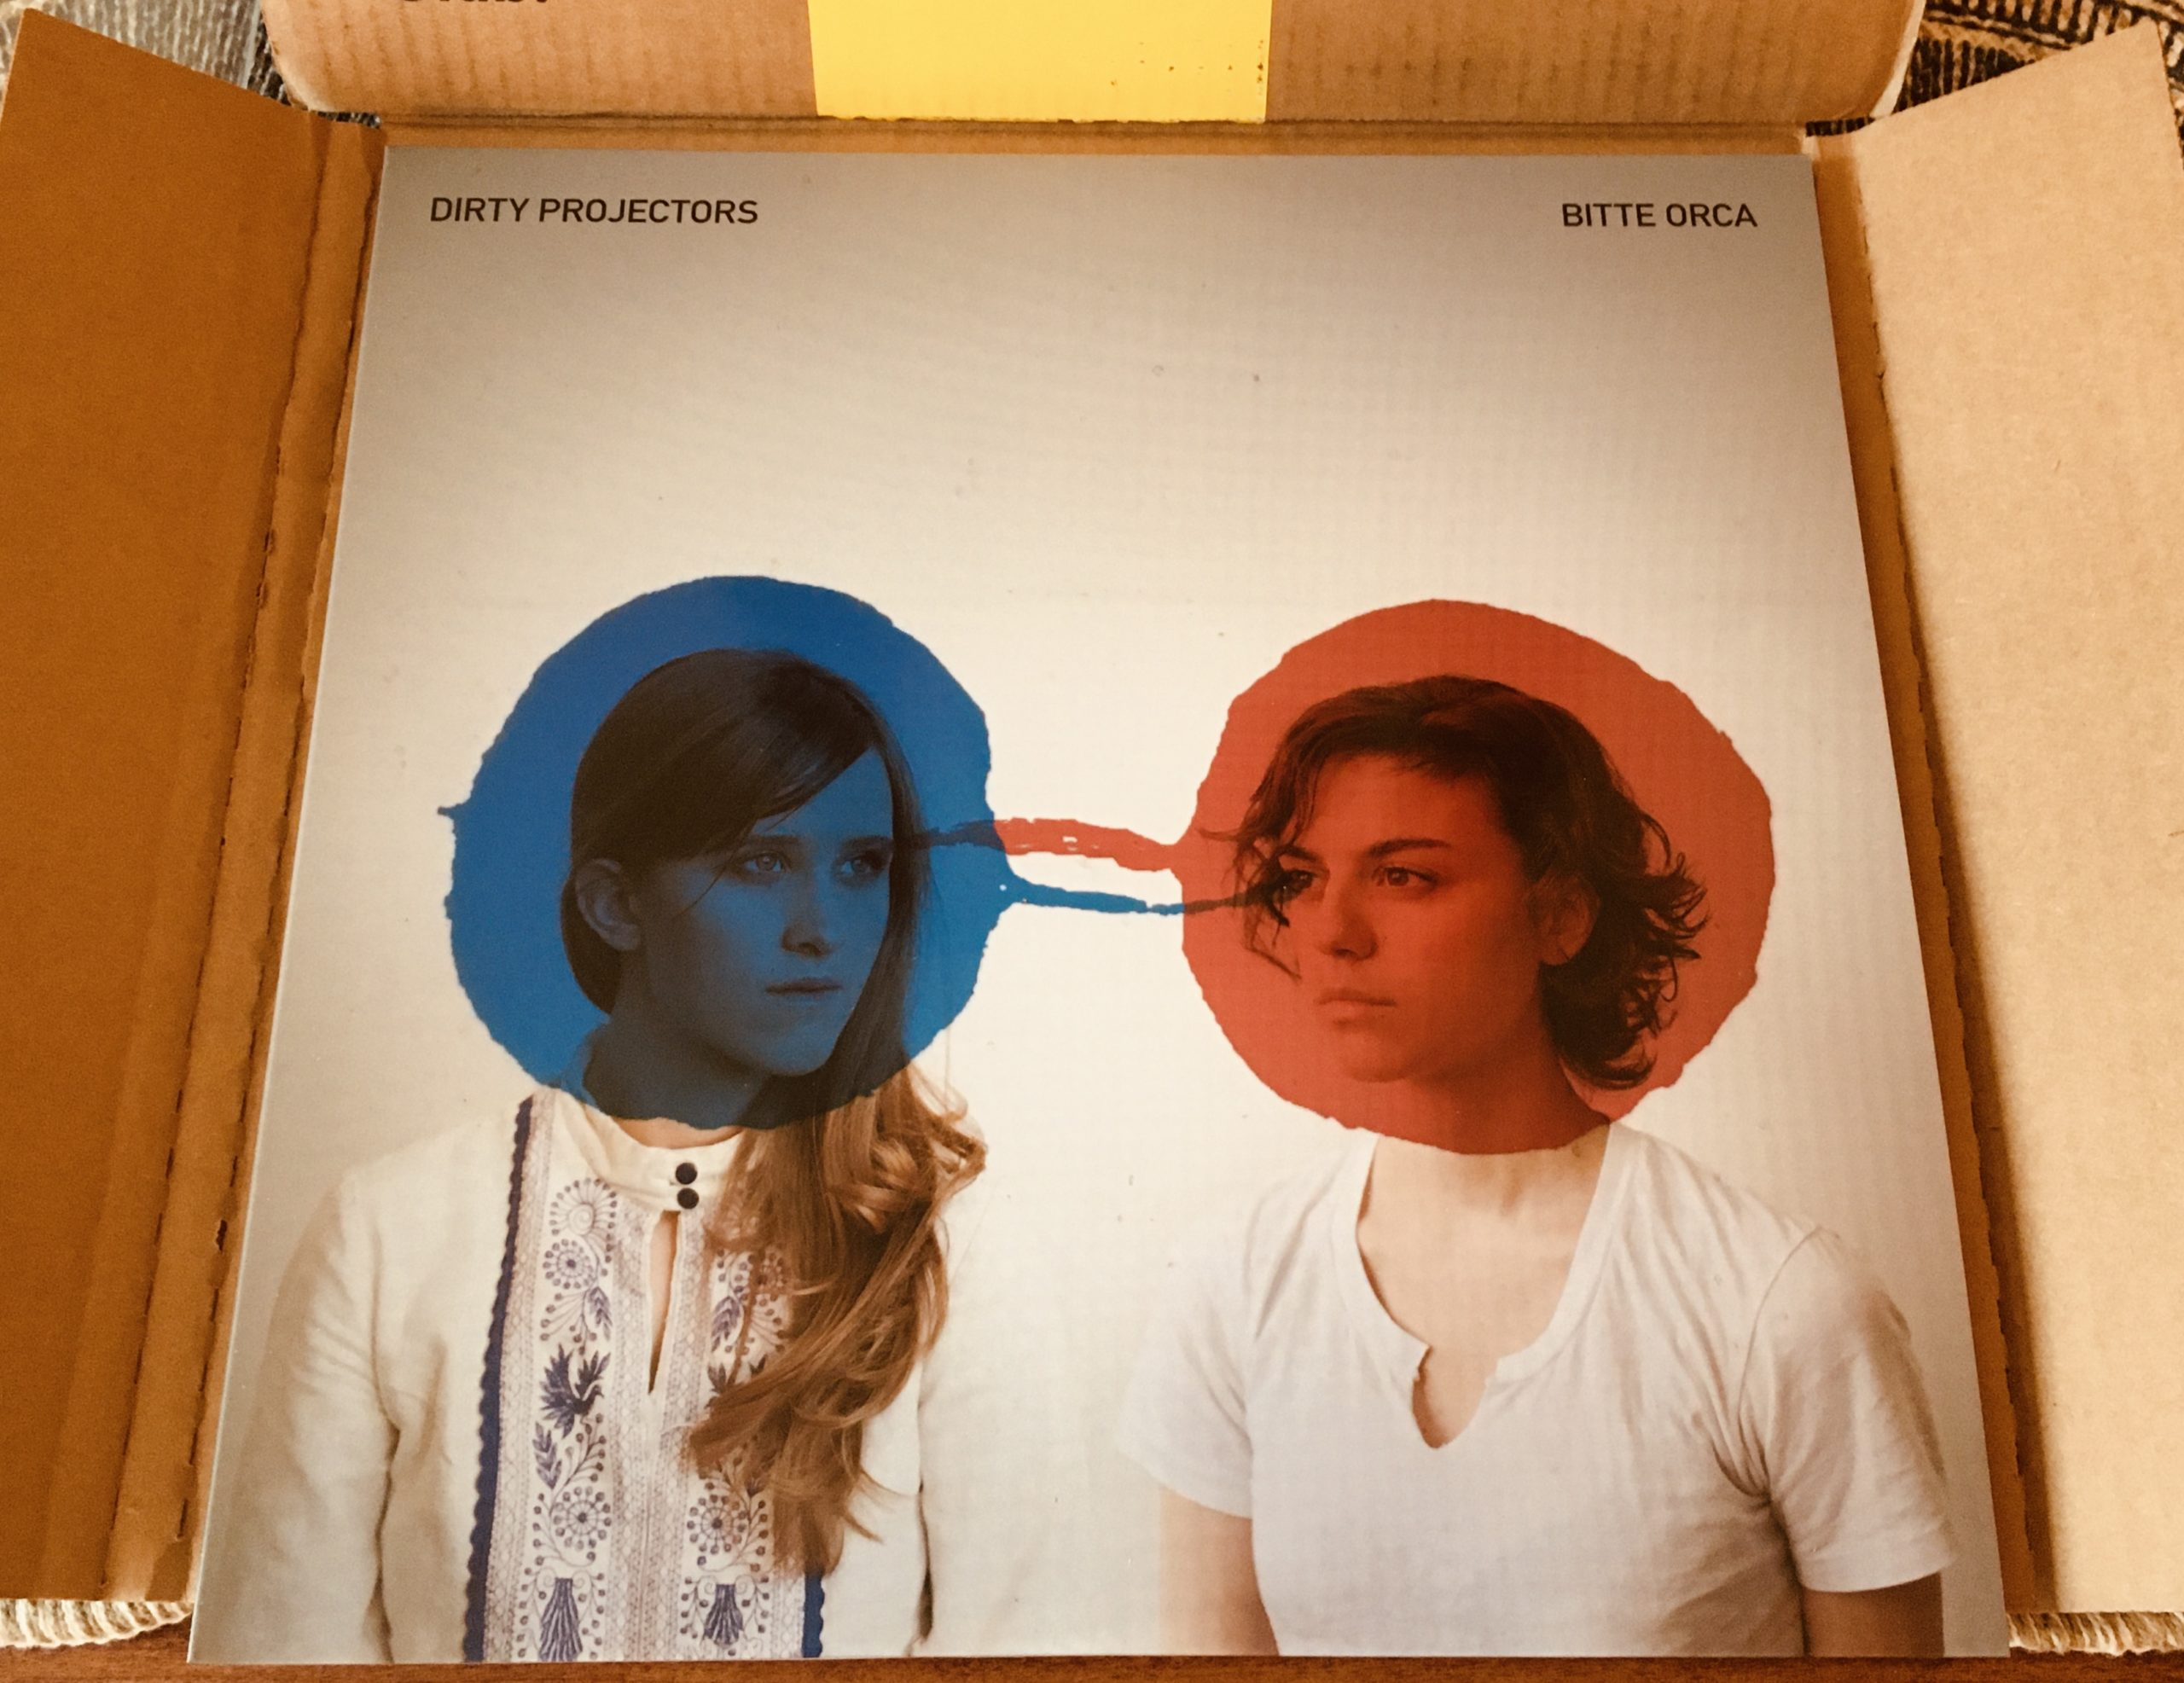 Geek insider, geekinsider, geekinsider. Com,, vinyl me, please january edition: dirty projectors 'bitte orca', culture, entertainment, events, featured, geek life